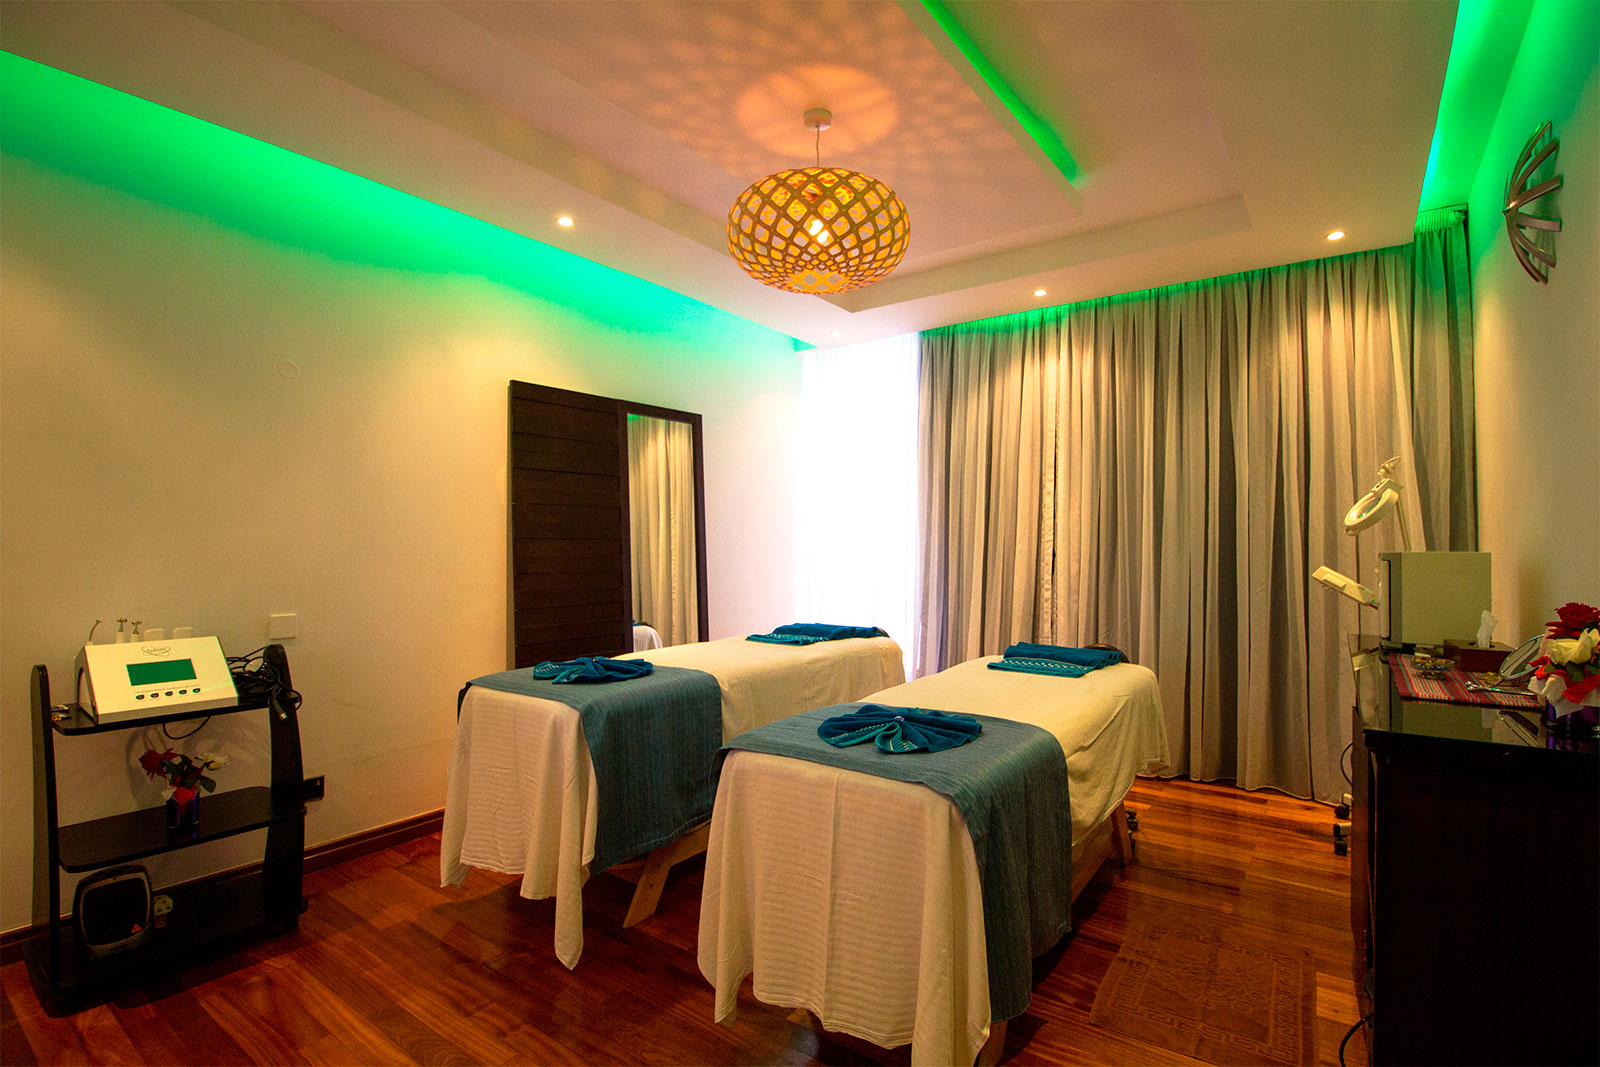 manicure, pedicure, revitalize, wellness, spa, massage